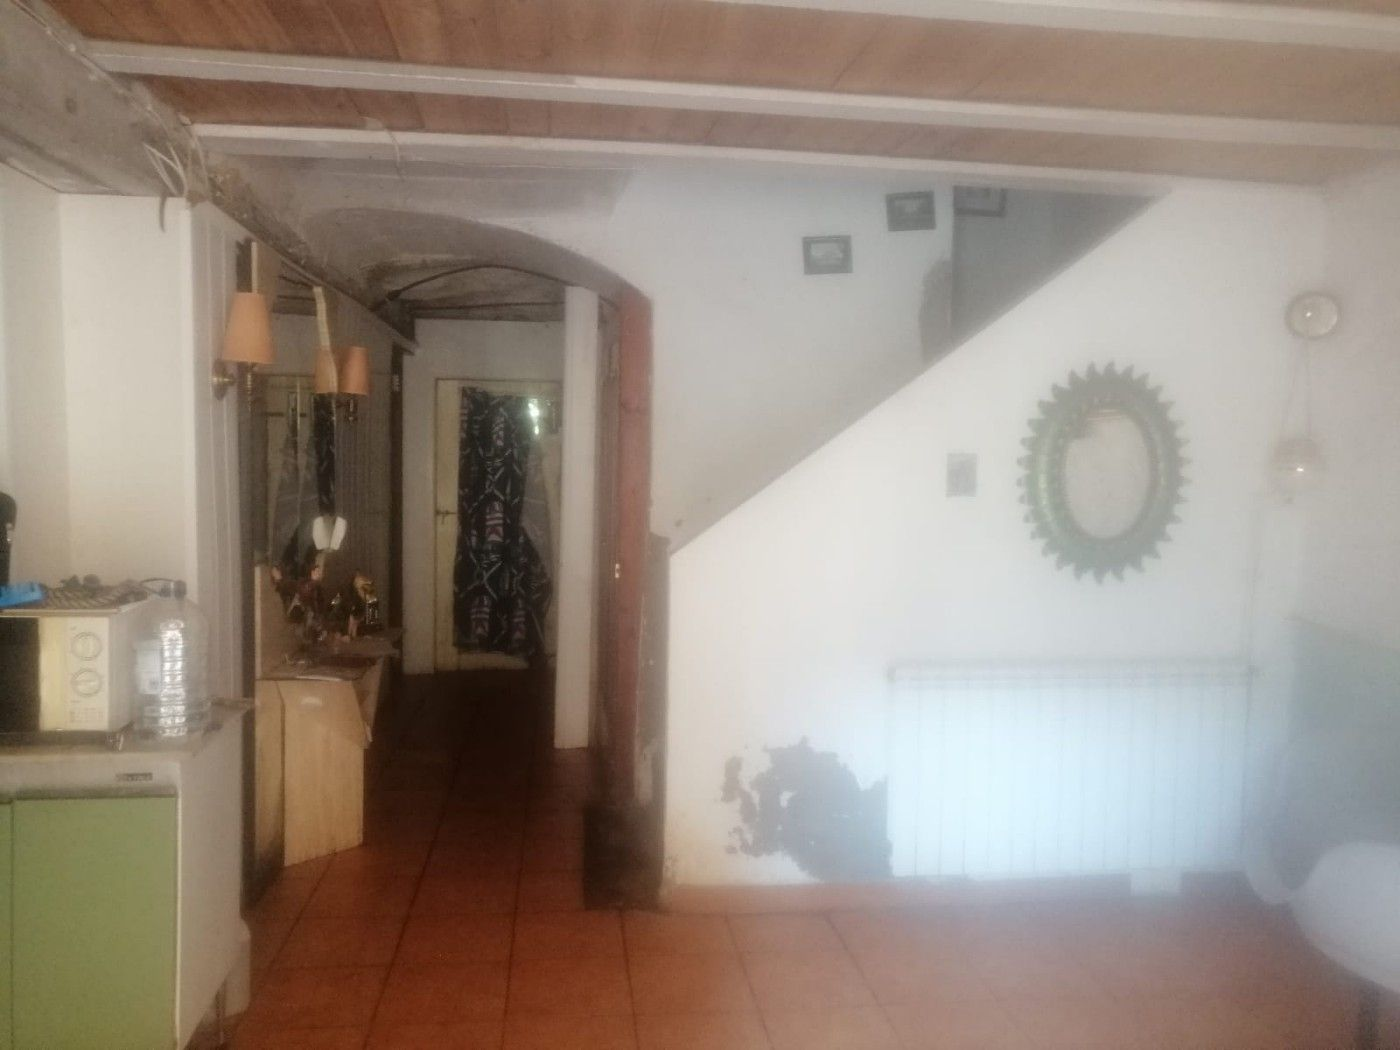 House in Carrer pont-alentorn, sn. Se vende casita de pueblo